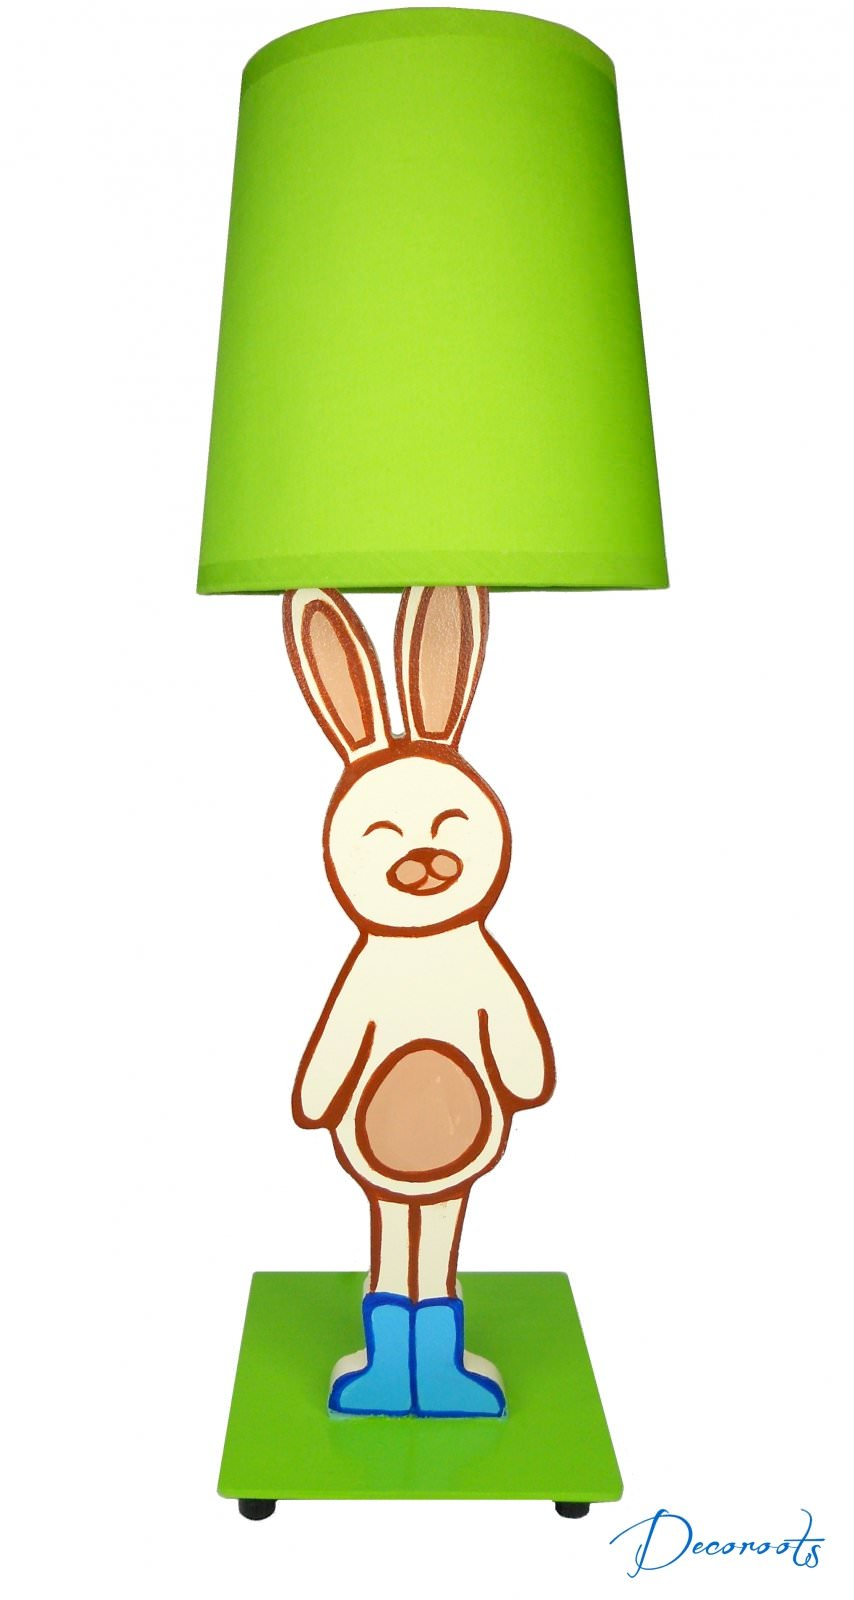 Lampe de chevet lapin gar on existe en bleu enfant for Lampe de chevet lapin